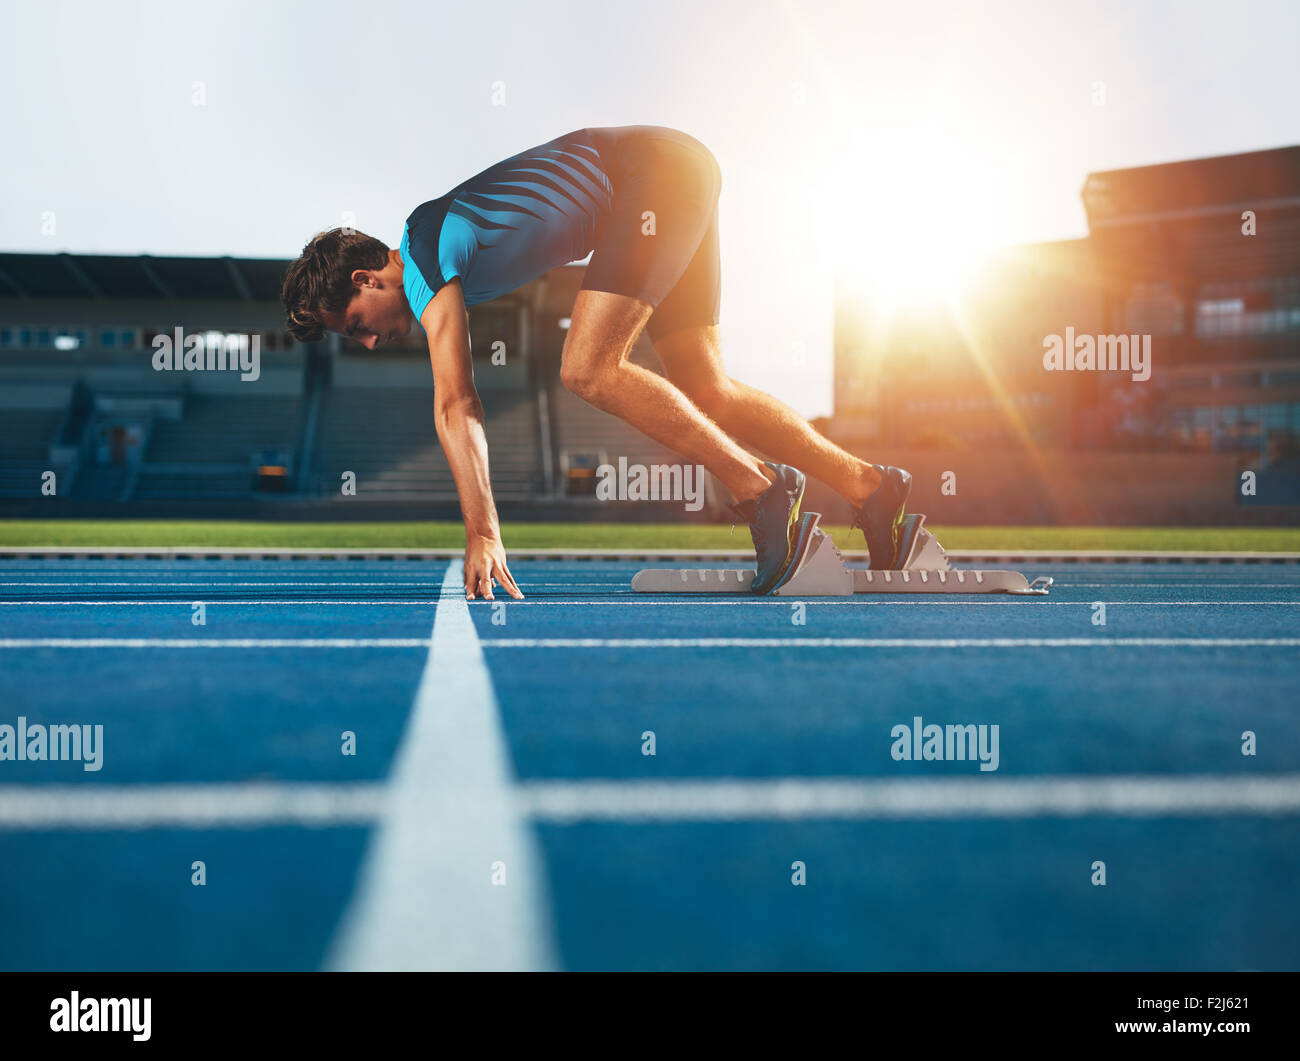 Male athlete on starting position at athletics running track. Runner practicing his sprint start in athletics stadium - Stock Image